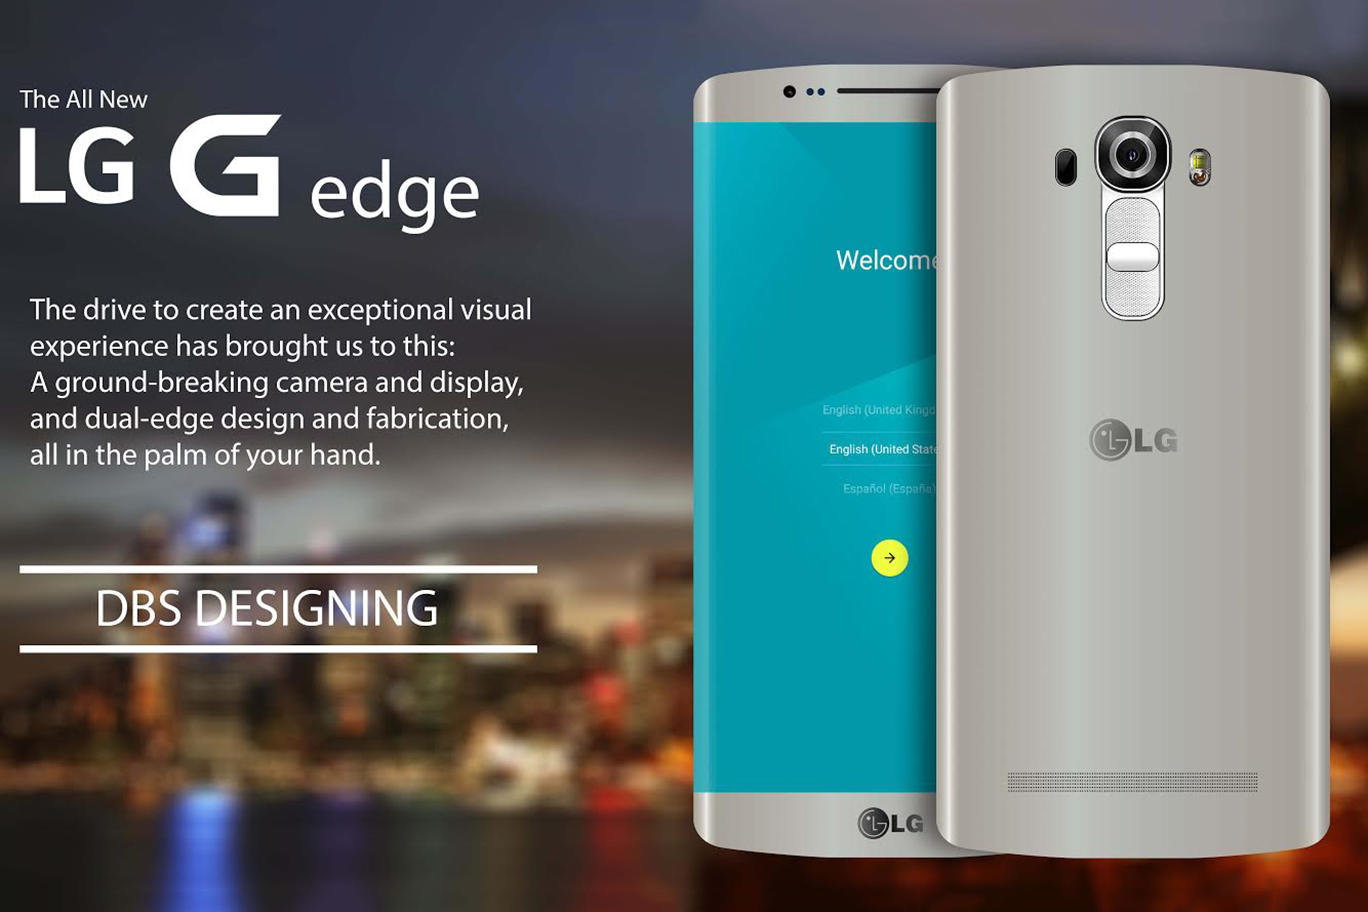 LG G Edge Android Smartphone